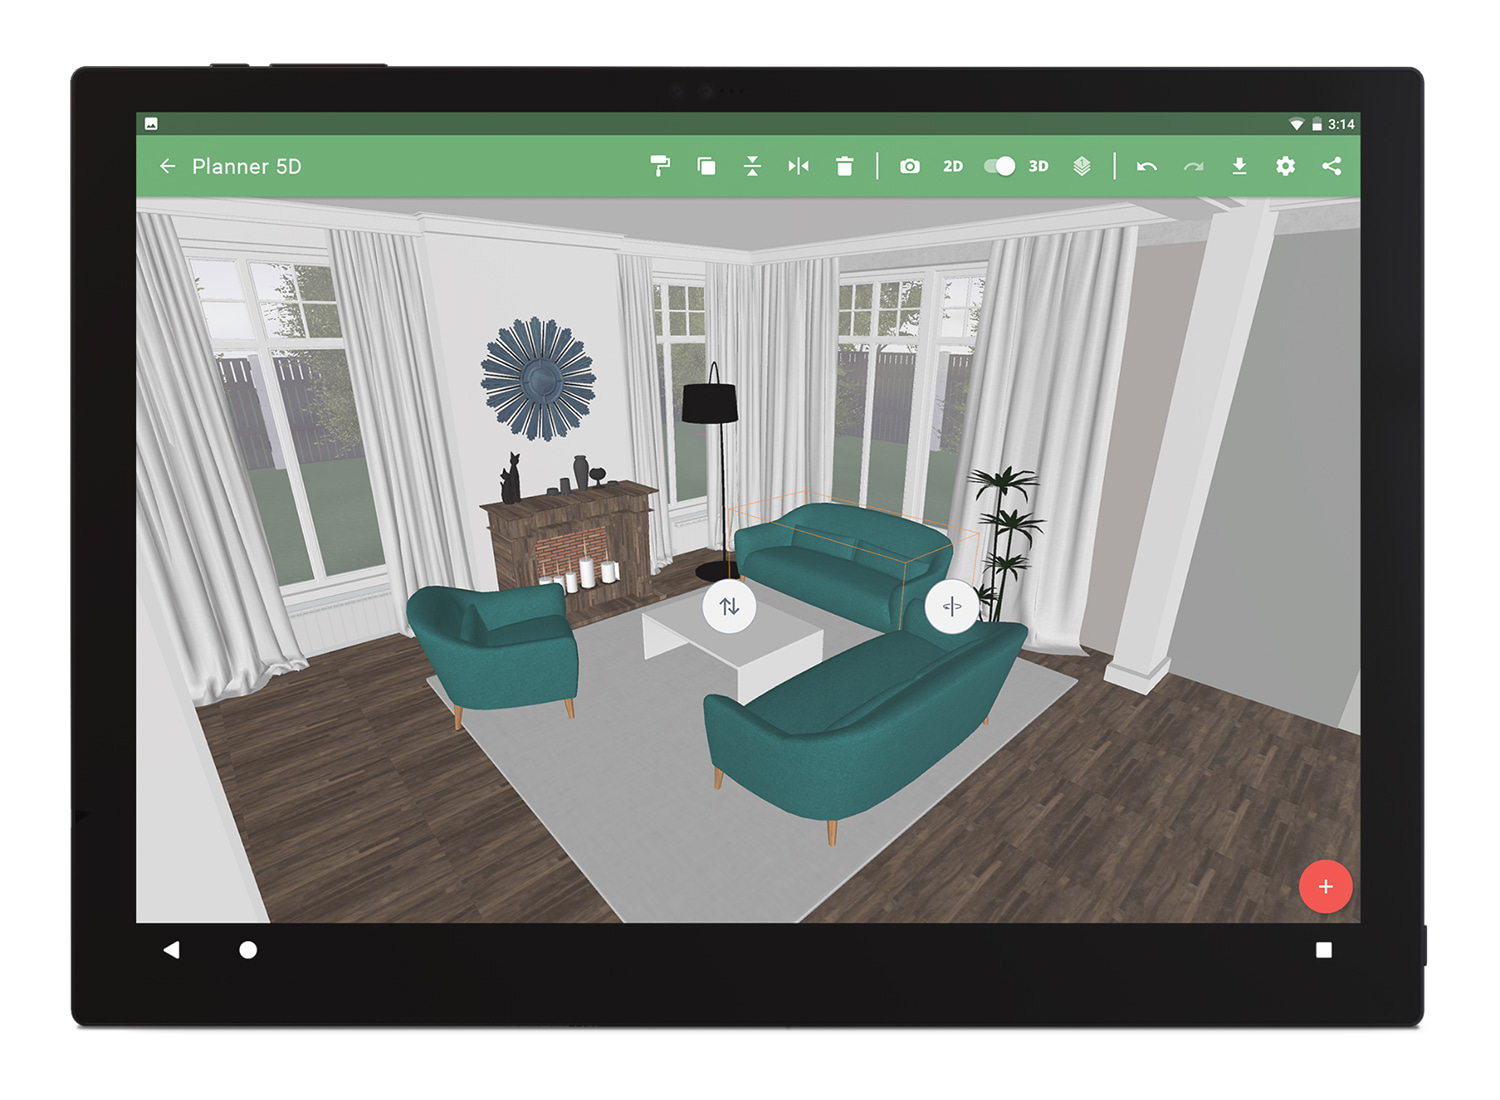 Interior Design Online Games Planner 5d